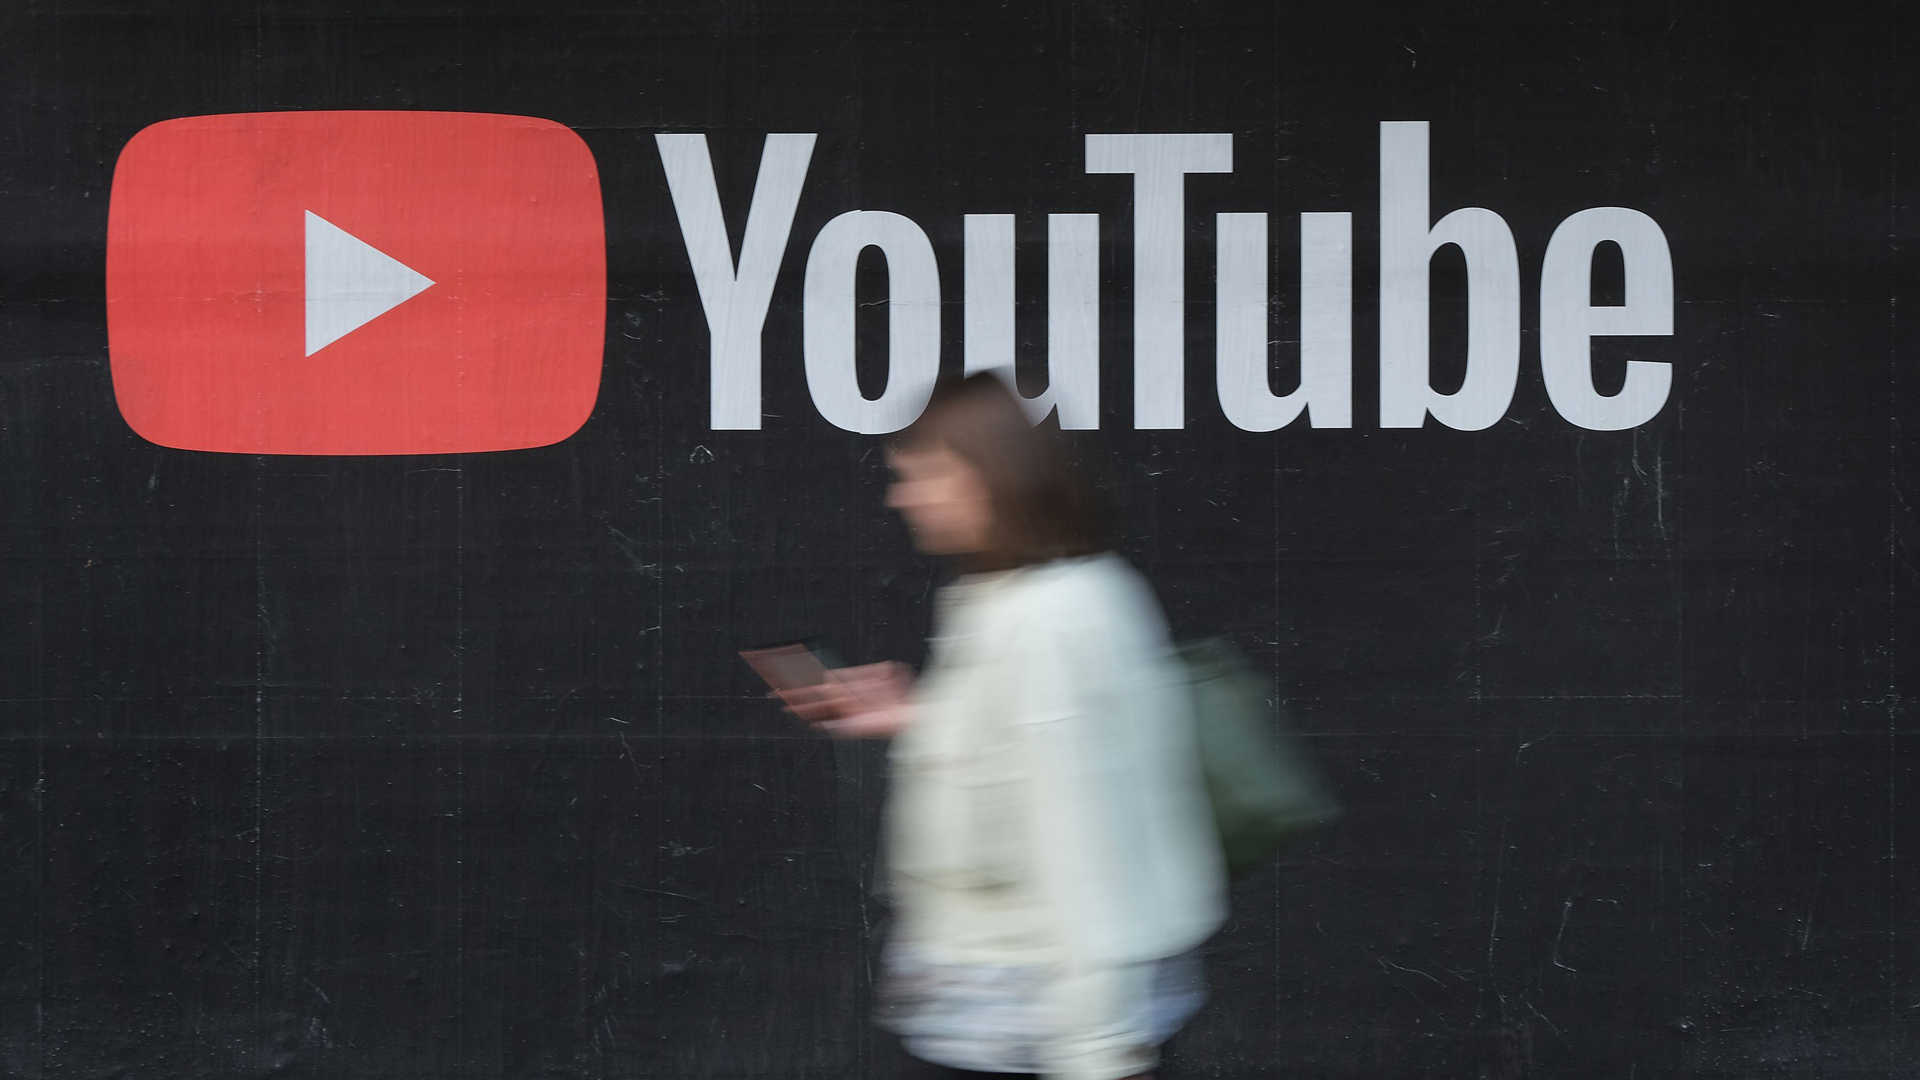 A person is seen walking in front of a YouTube sign in this file photo. (Credit: Sean Gallup/Getty Images)